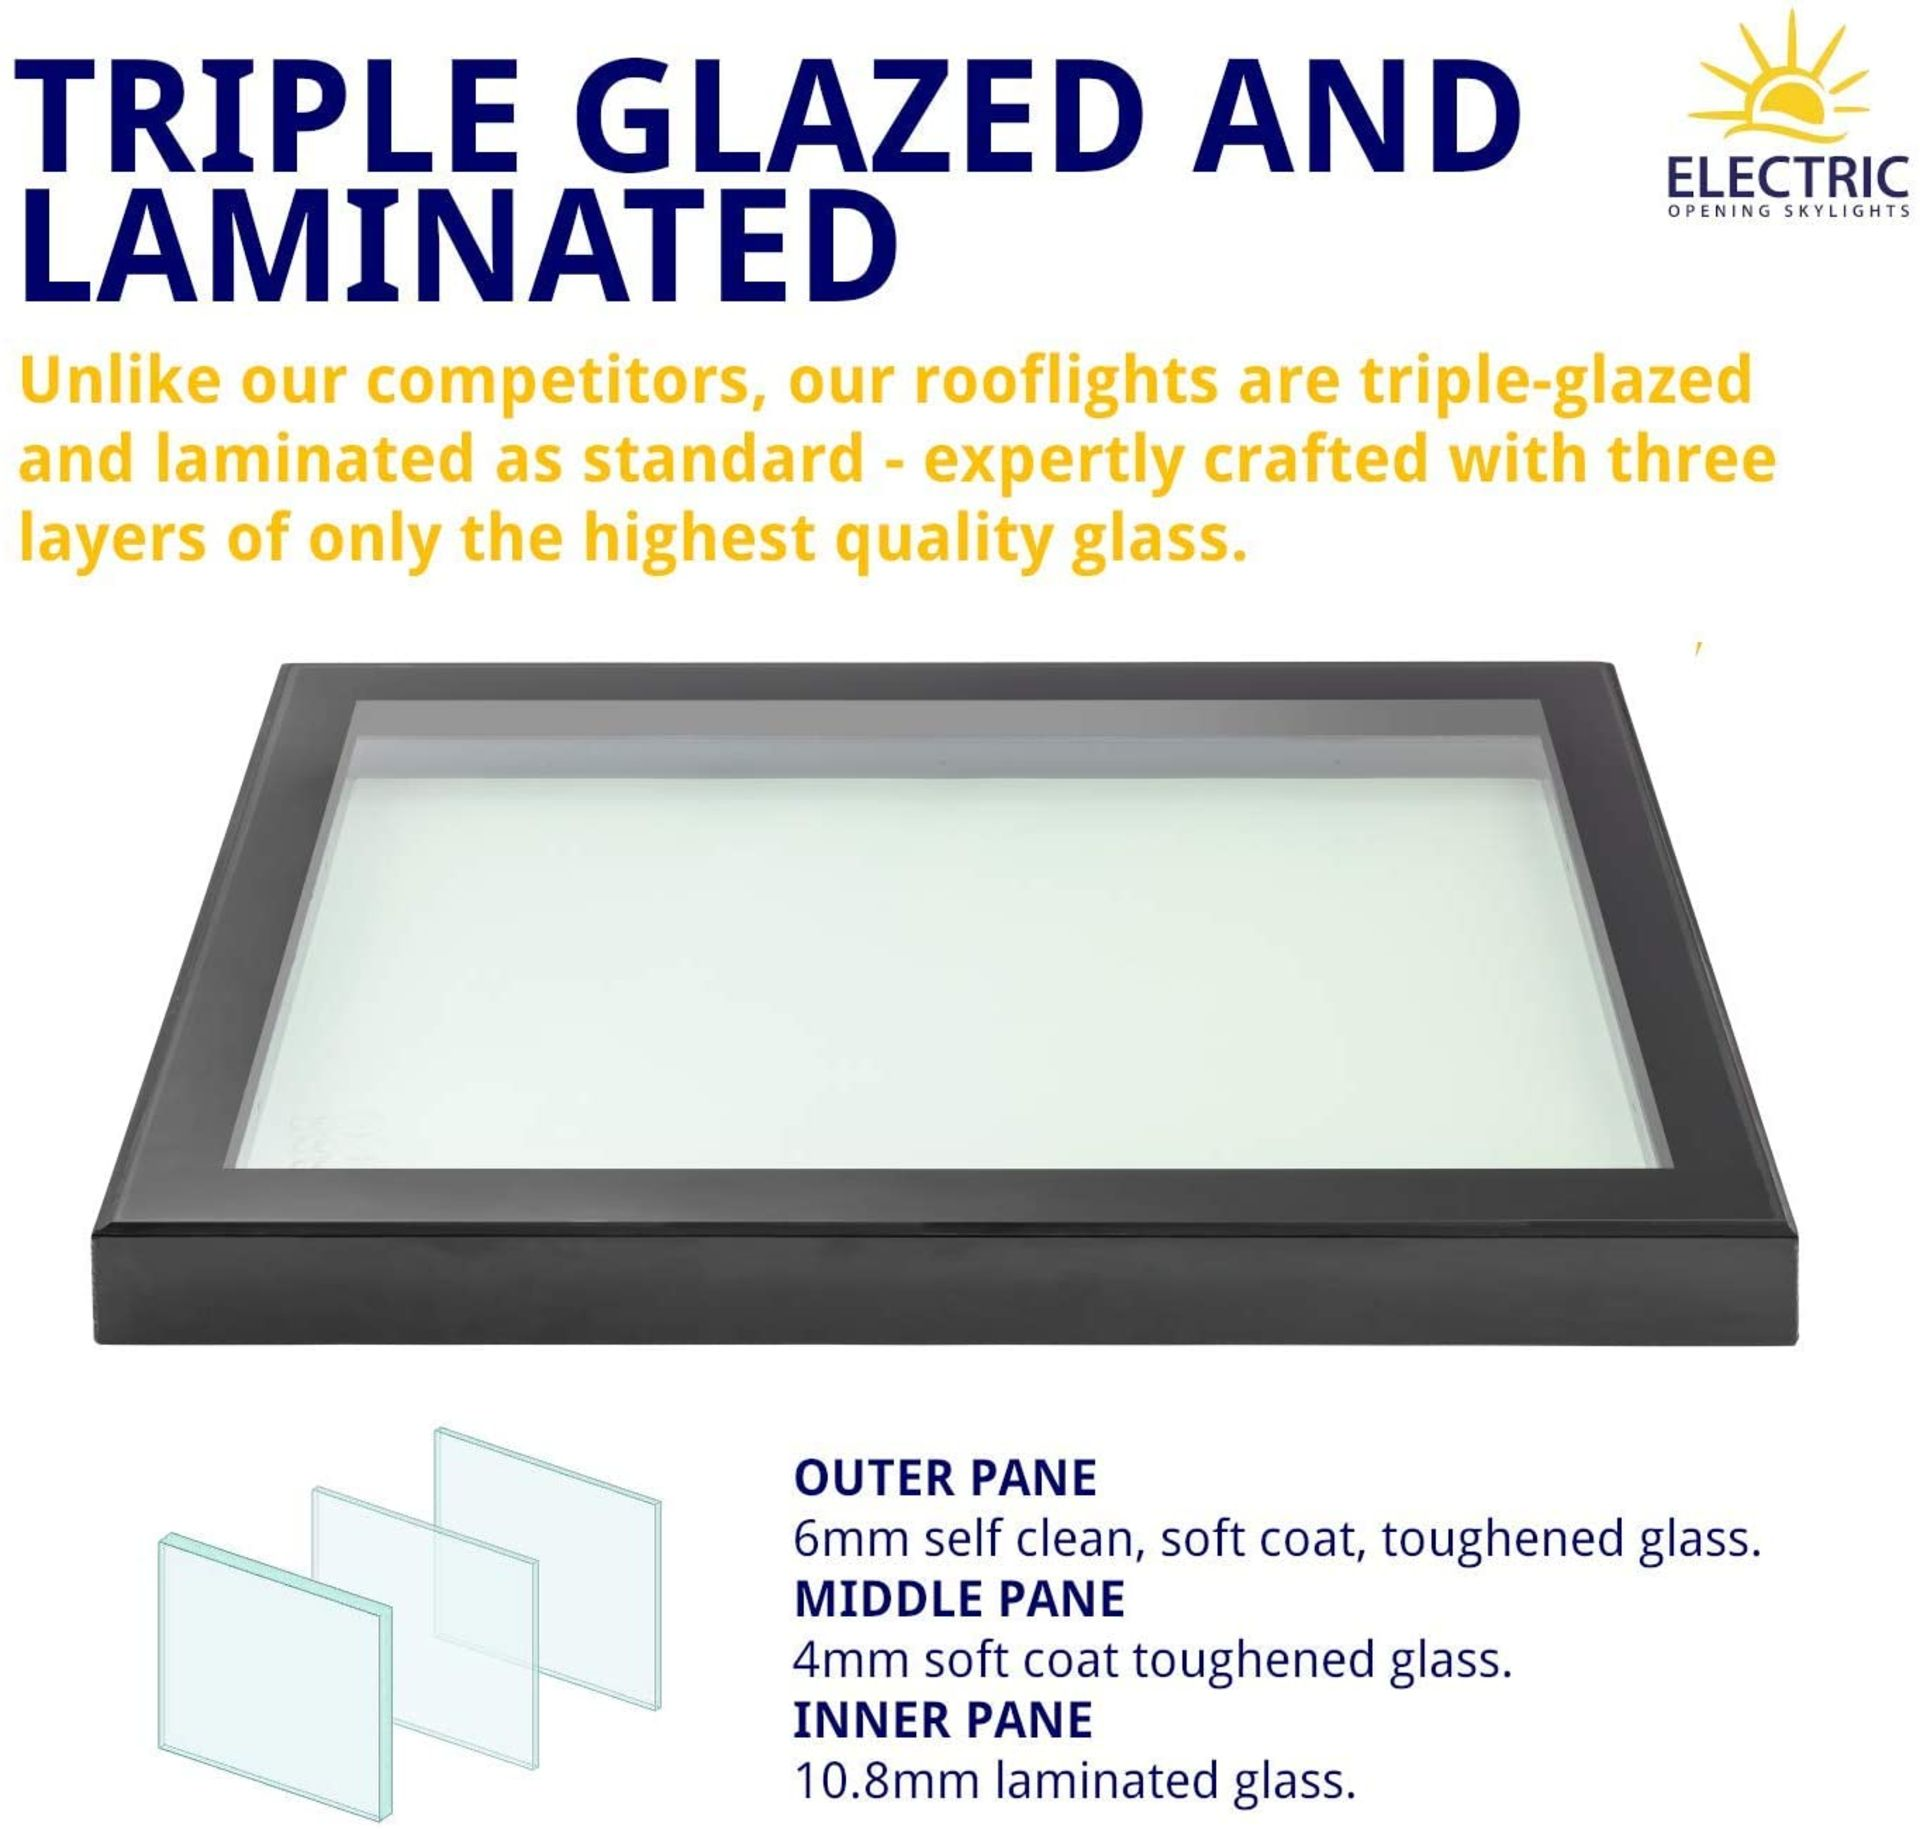 Panoroof (EOS) Fixed Aluminium Triple-Glazed Laminated Skylight with Self-Cleaning Glass - 800x800mm - Image 3 of 6